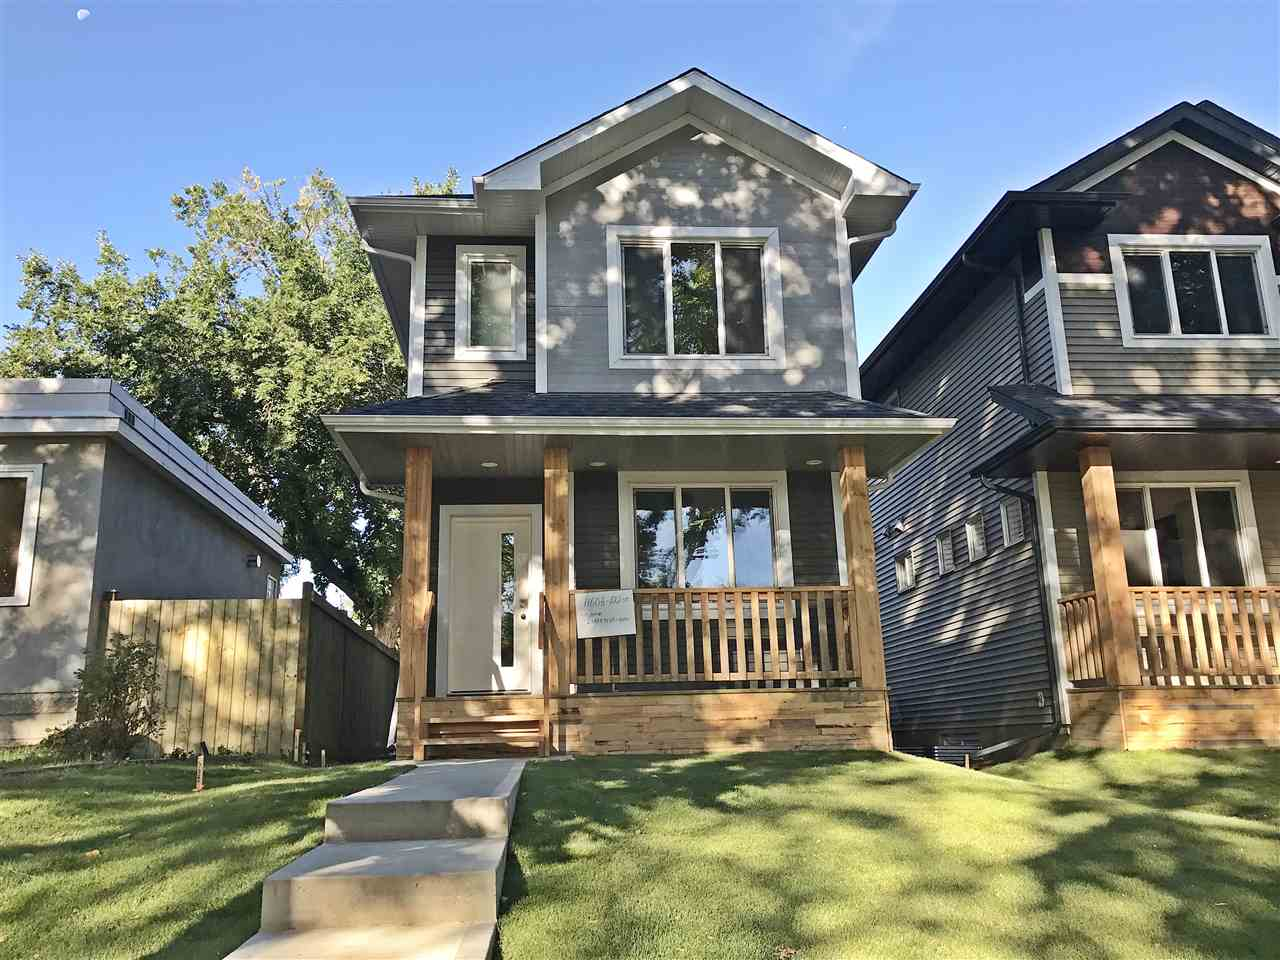 Main Photo: 11606 122 Street in Edmonton: Zone 07 House for sale : MLS® # E4080071